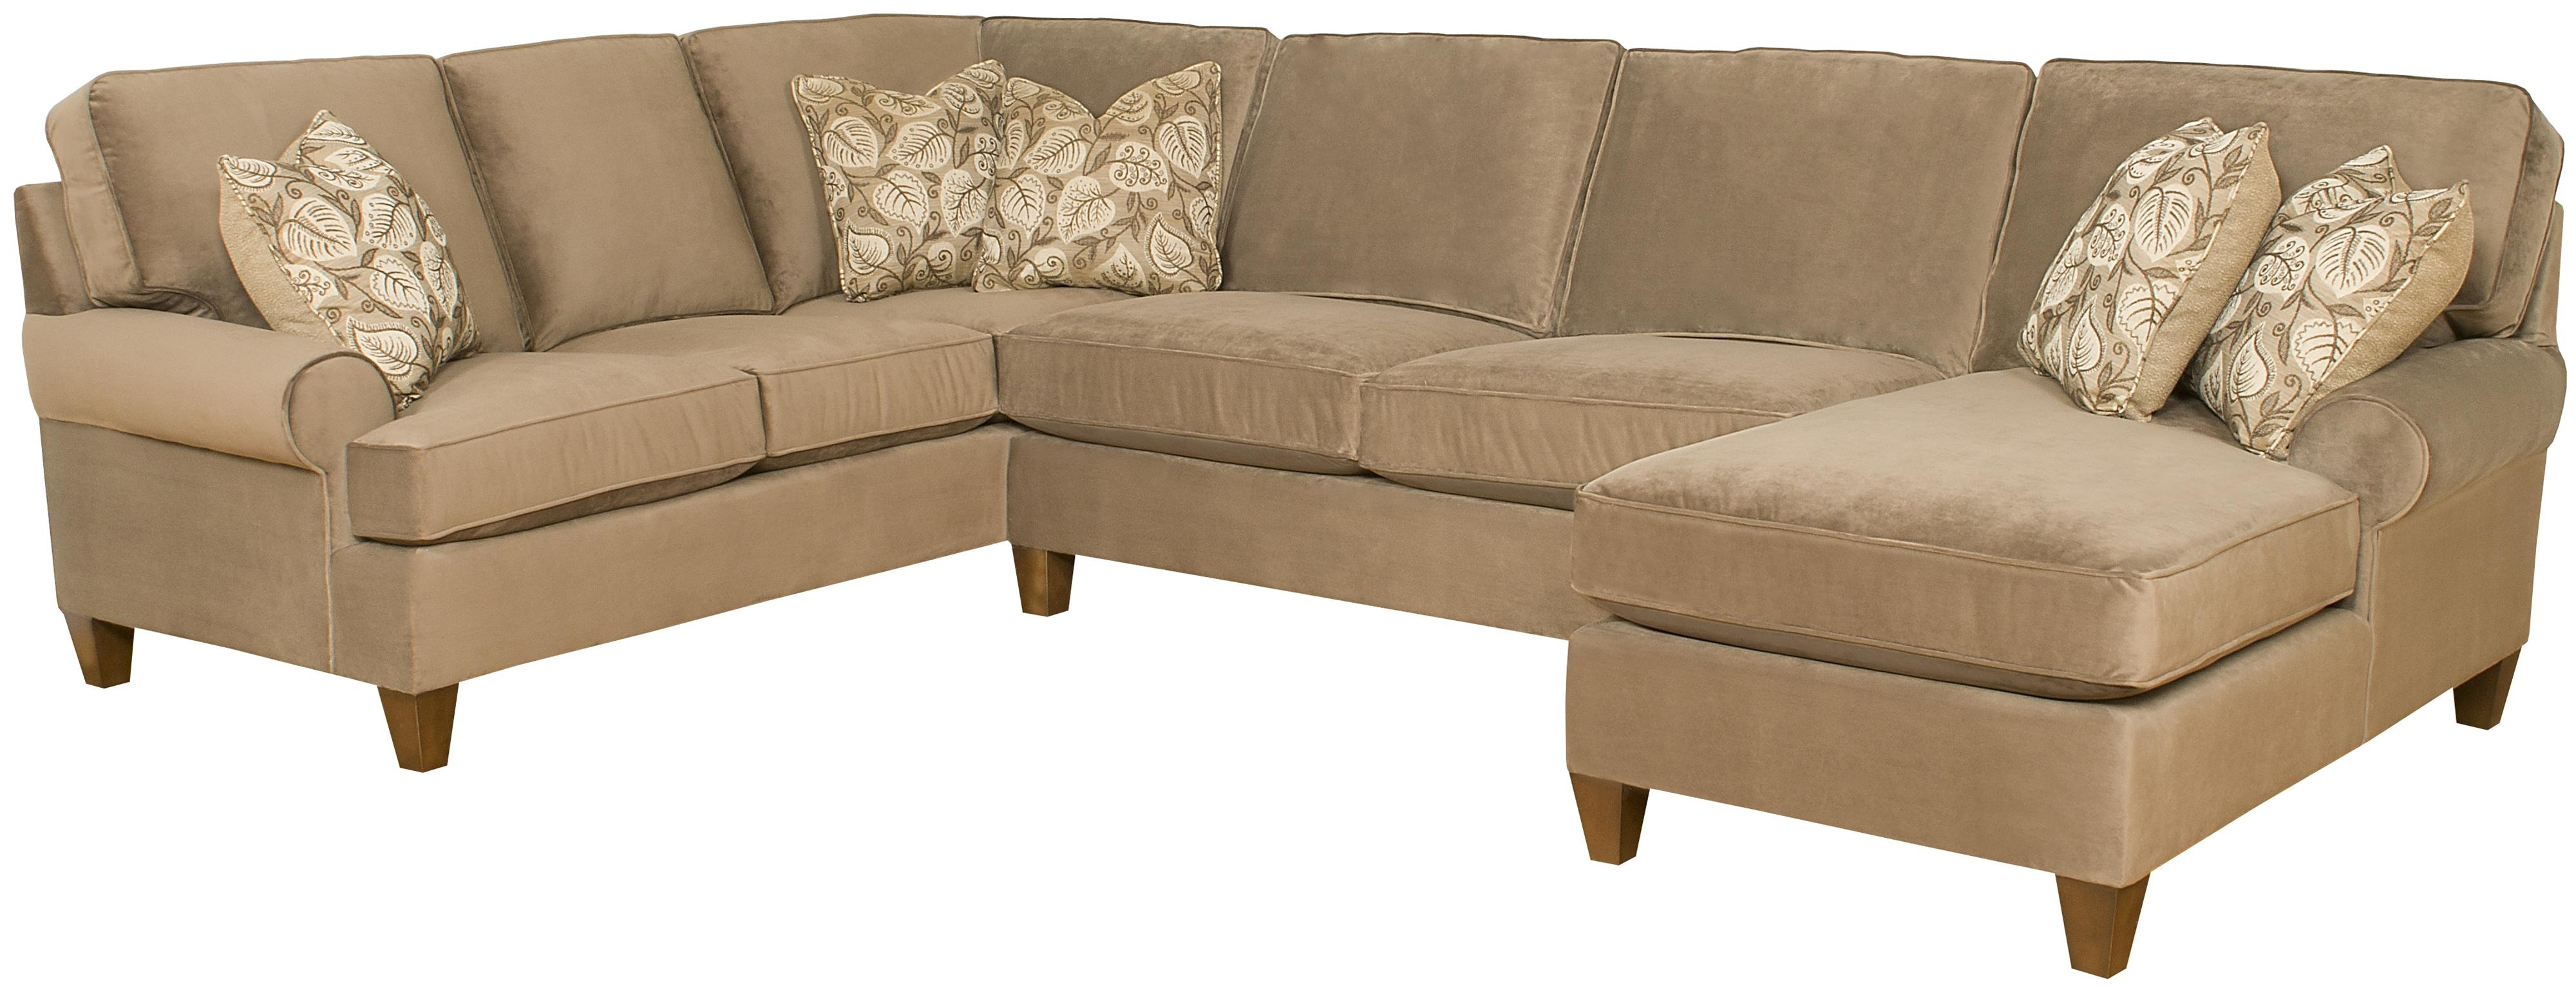 Chatham Custom Sectionalking Hickory | Furniture | Pinterest In Hickory Nc Sectional Sofas (Image 2 of 10)